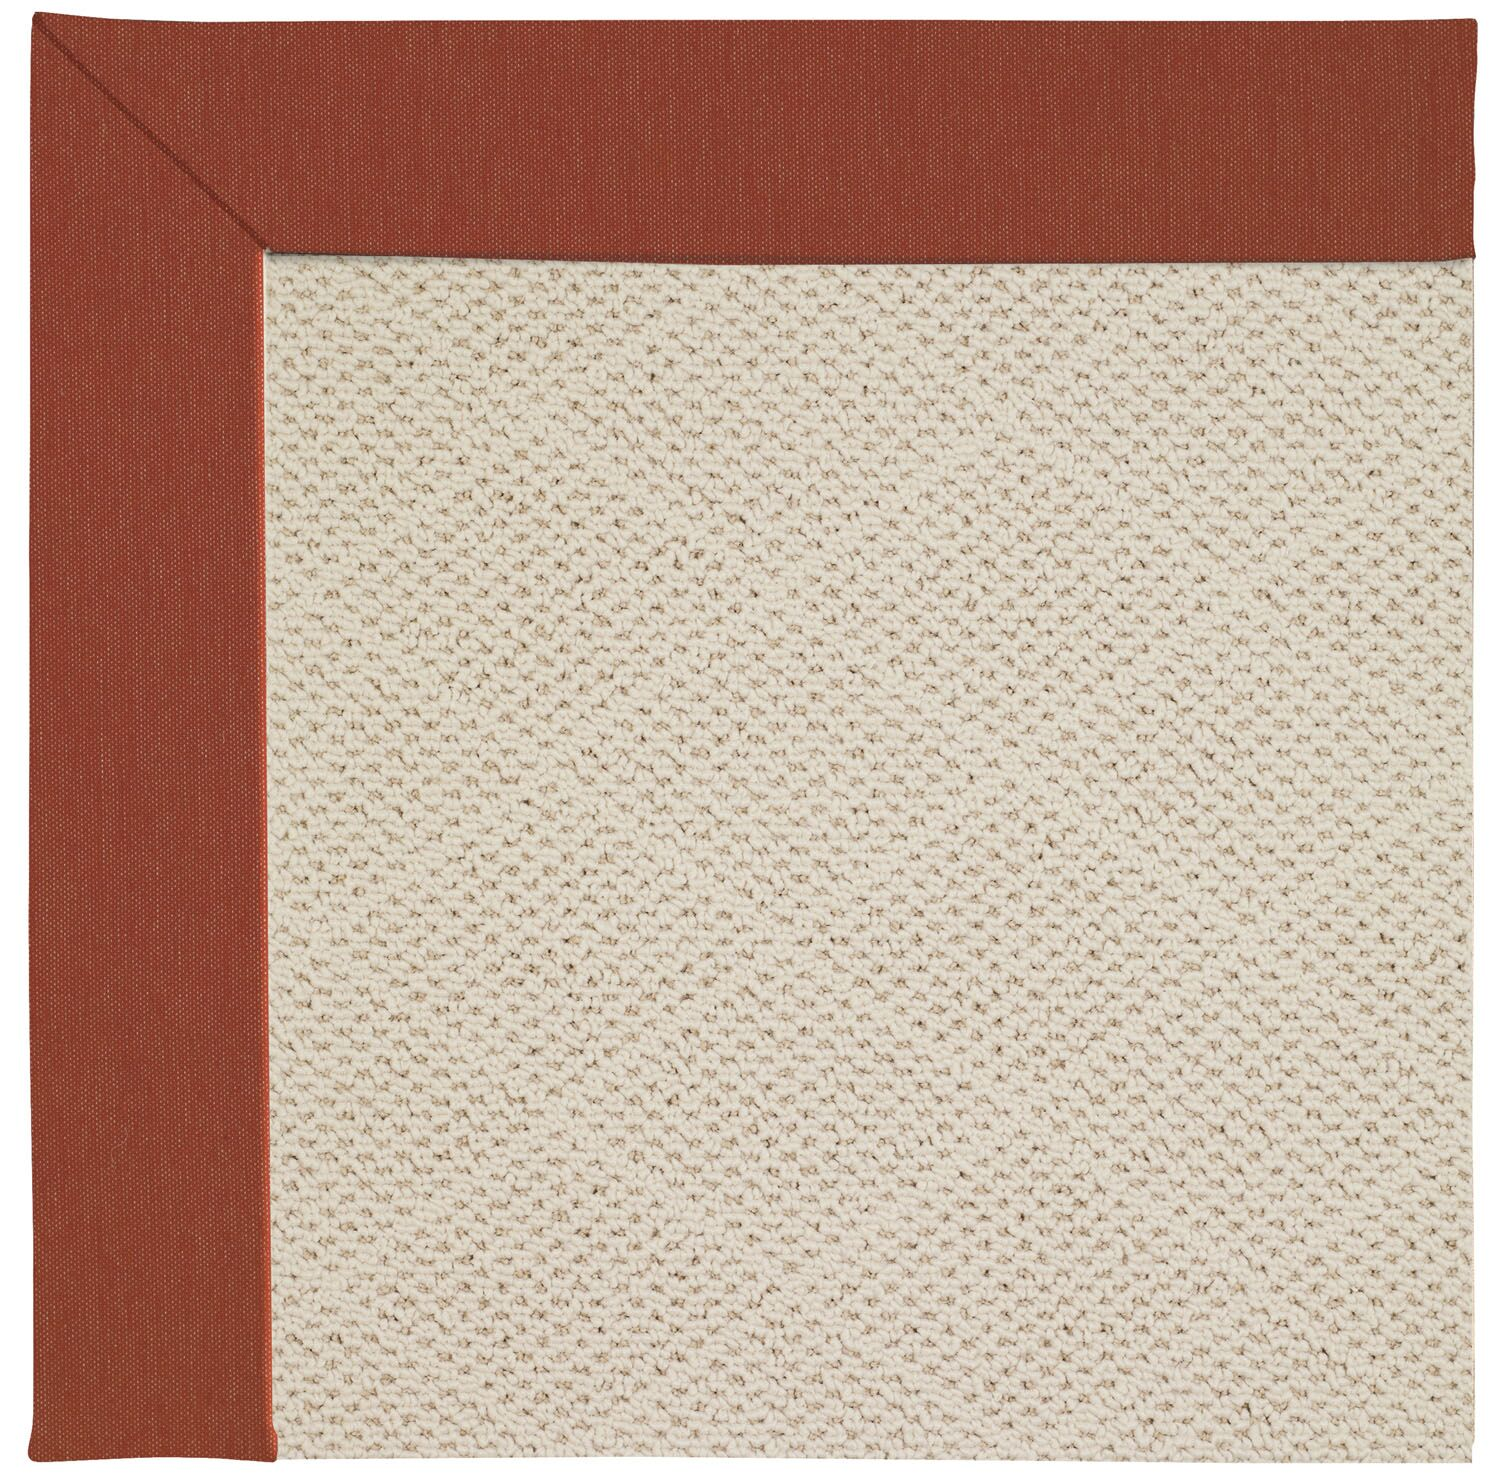 Lisle Beige Indoor/Outdoor Area Rug Rug Size: Rectangle 4' x 6'